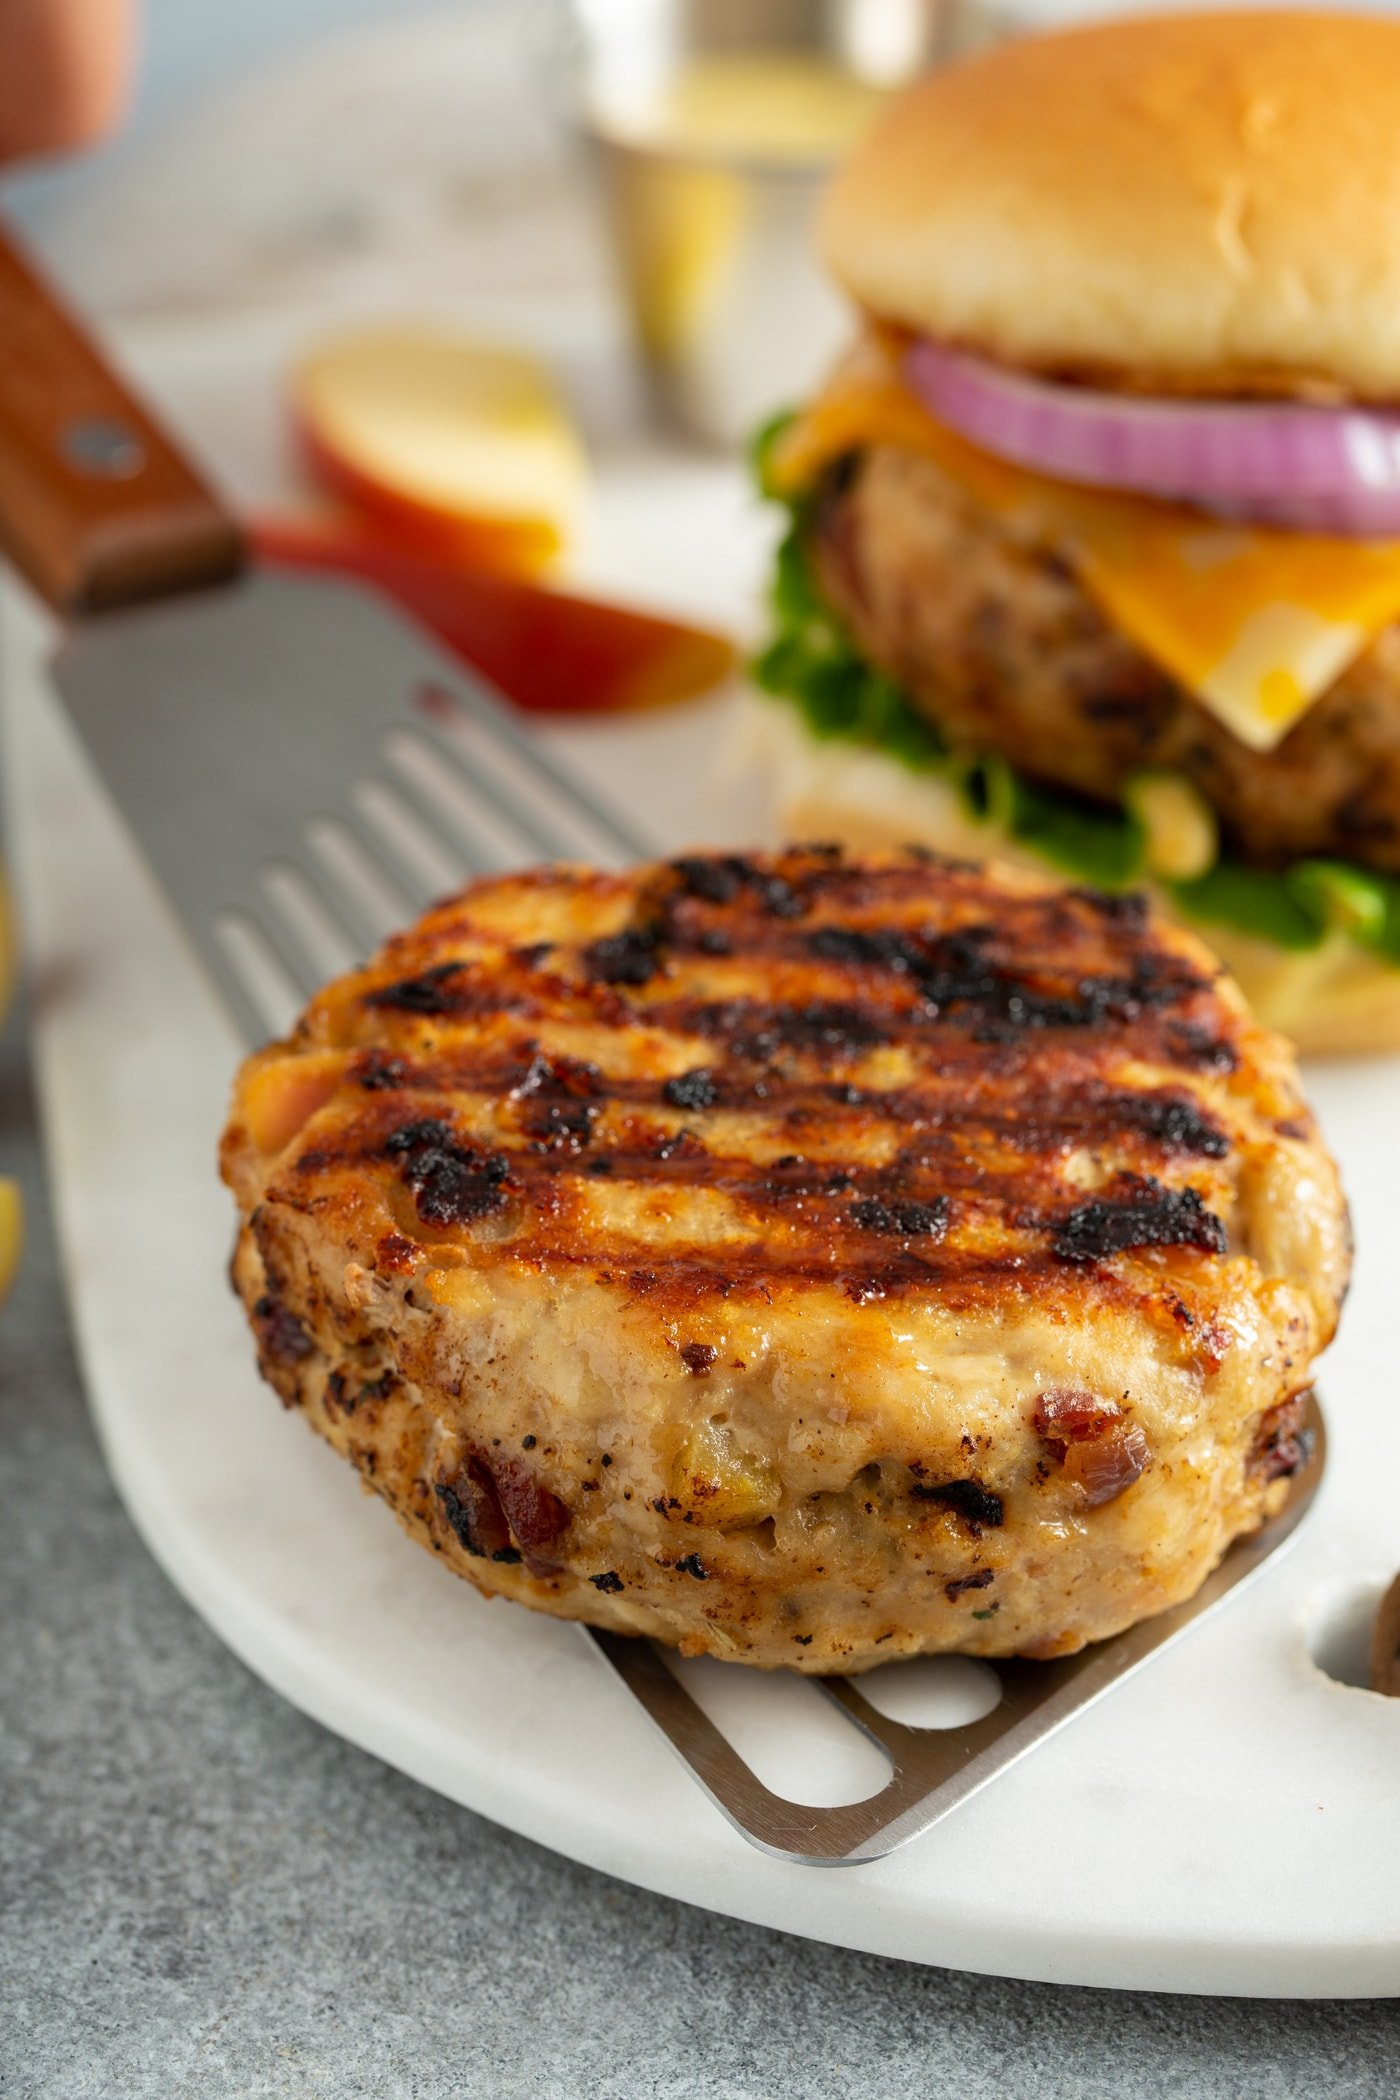 A grilled chicken burger patty being placed on a white plate with a spatula. There are apple slices and another chicken burger in the background..